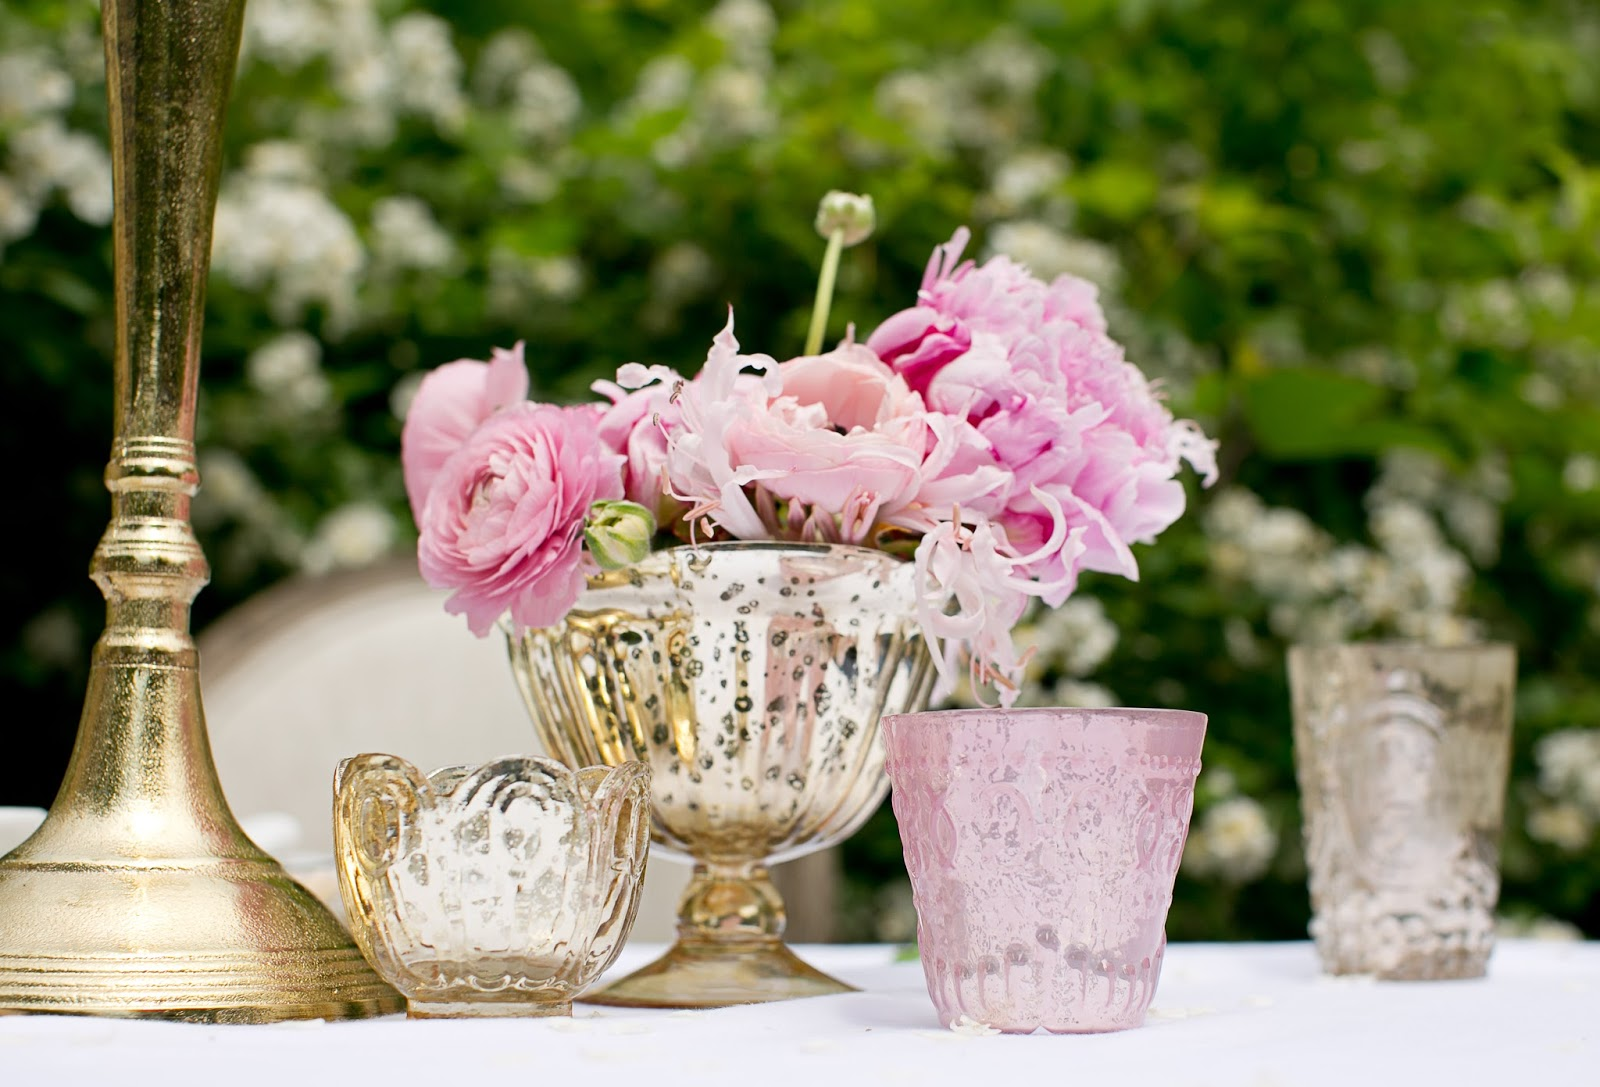 Diy table centerpieces for parties yasabe